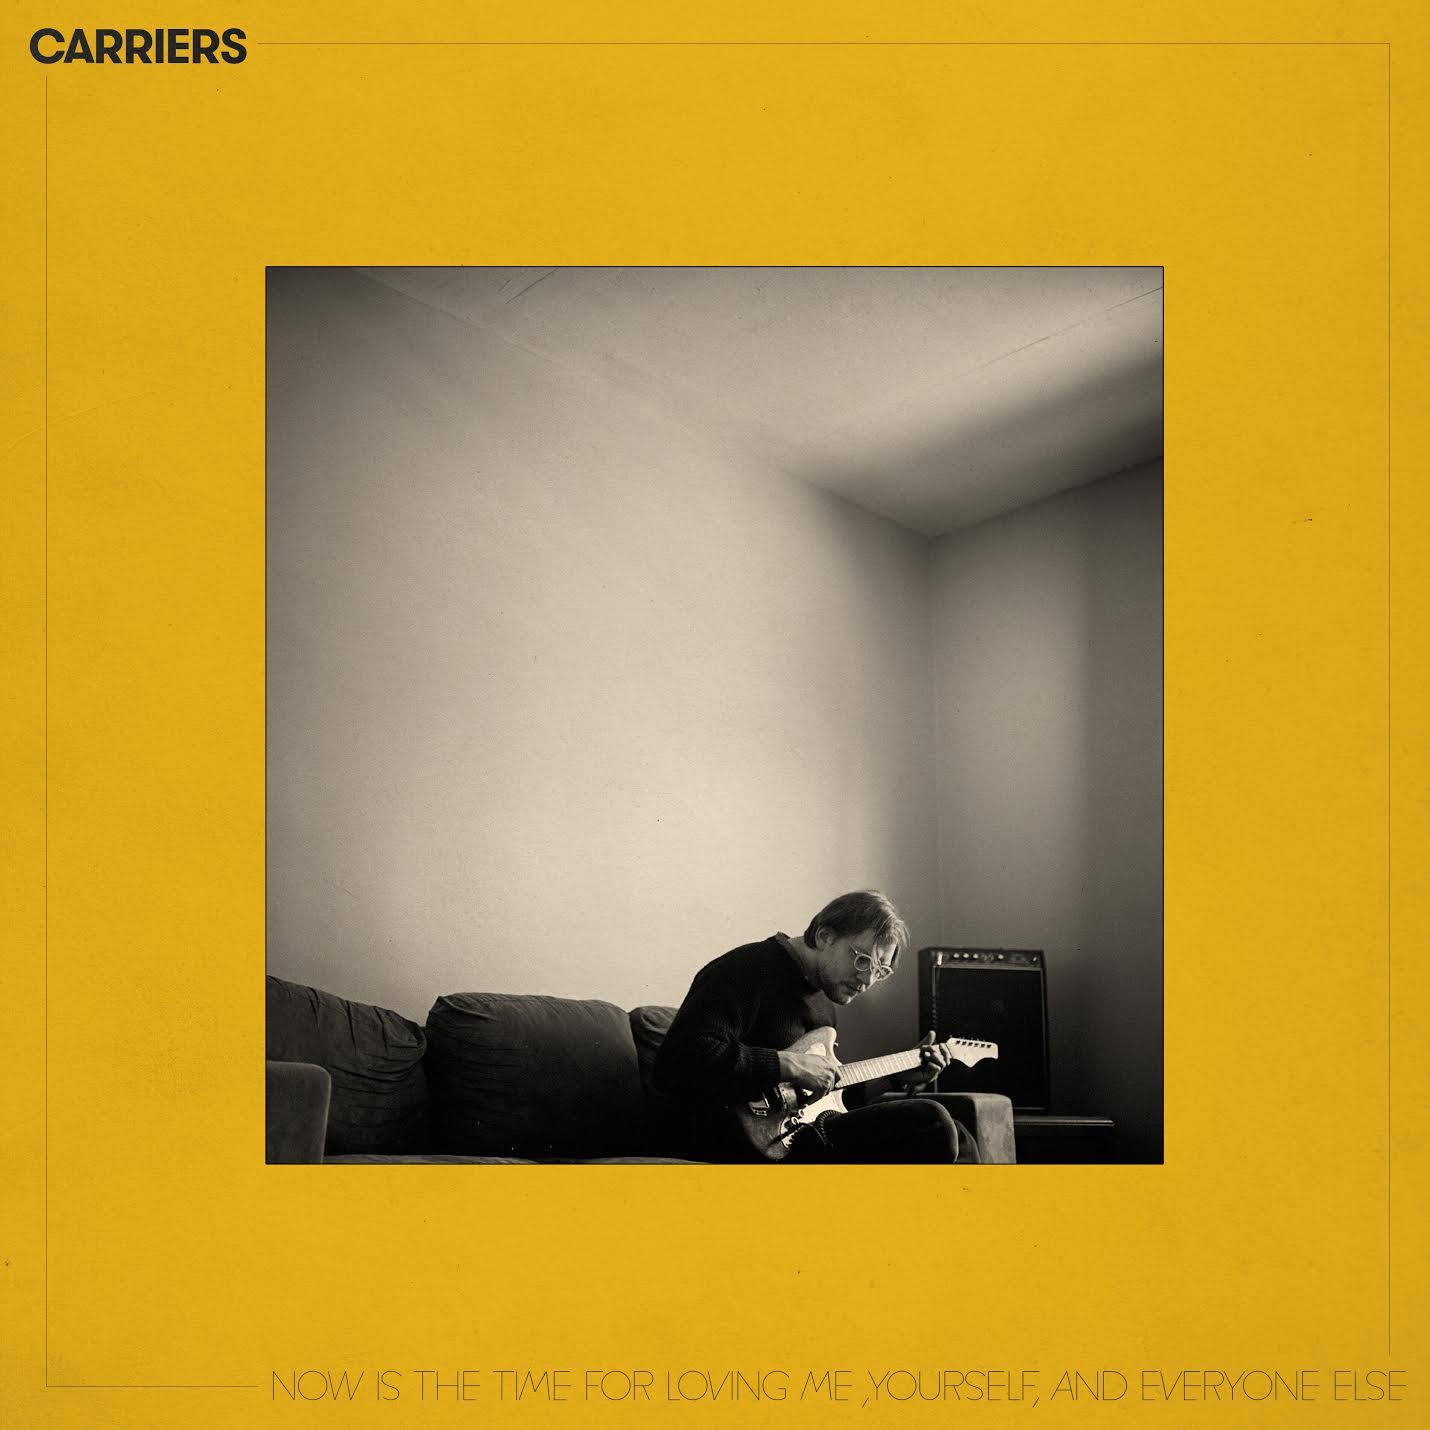 Carriers Now Is The Time For Loving Me, Yourself & Everyone Else album cover artwork